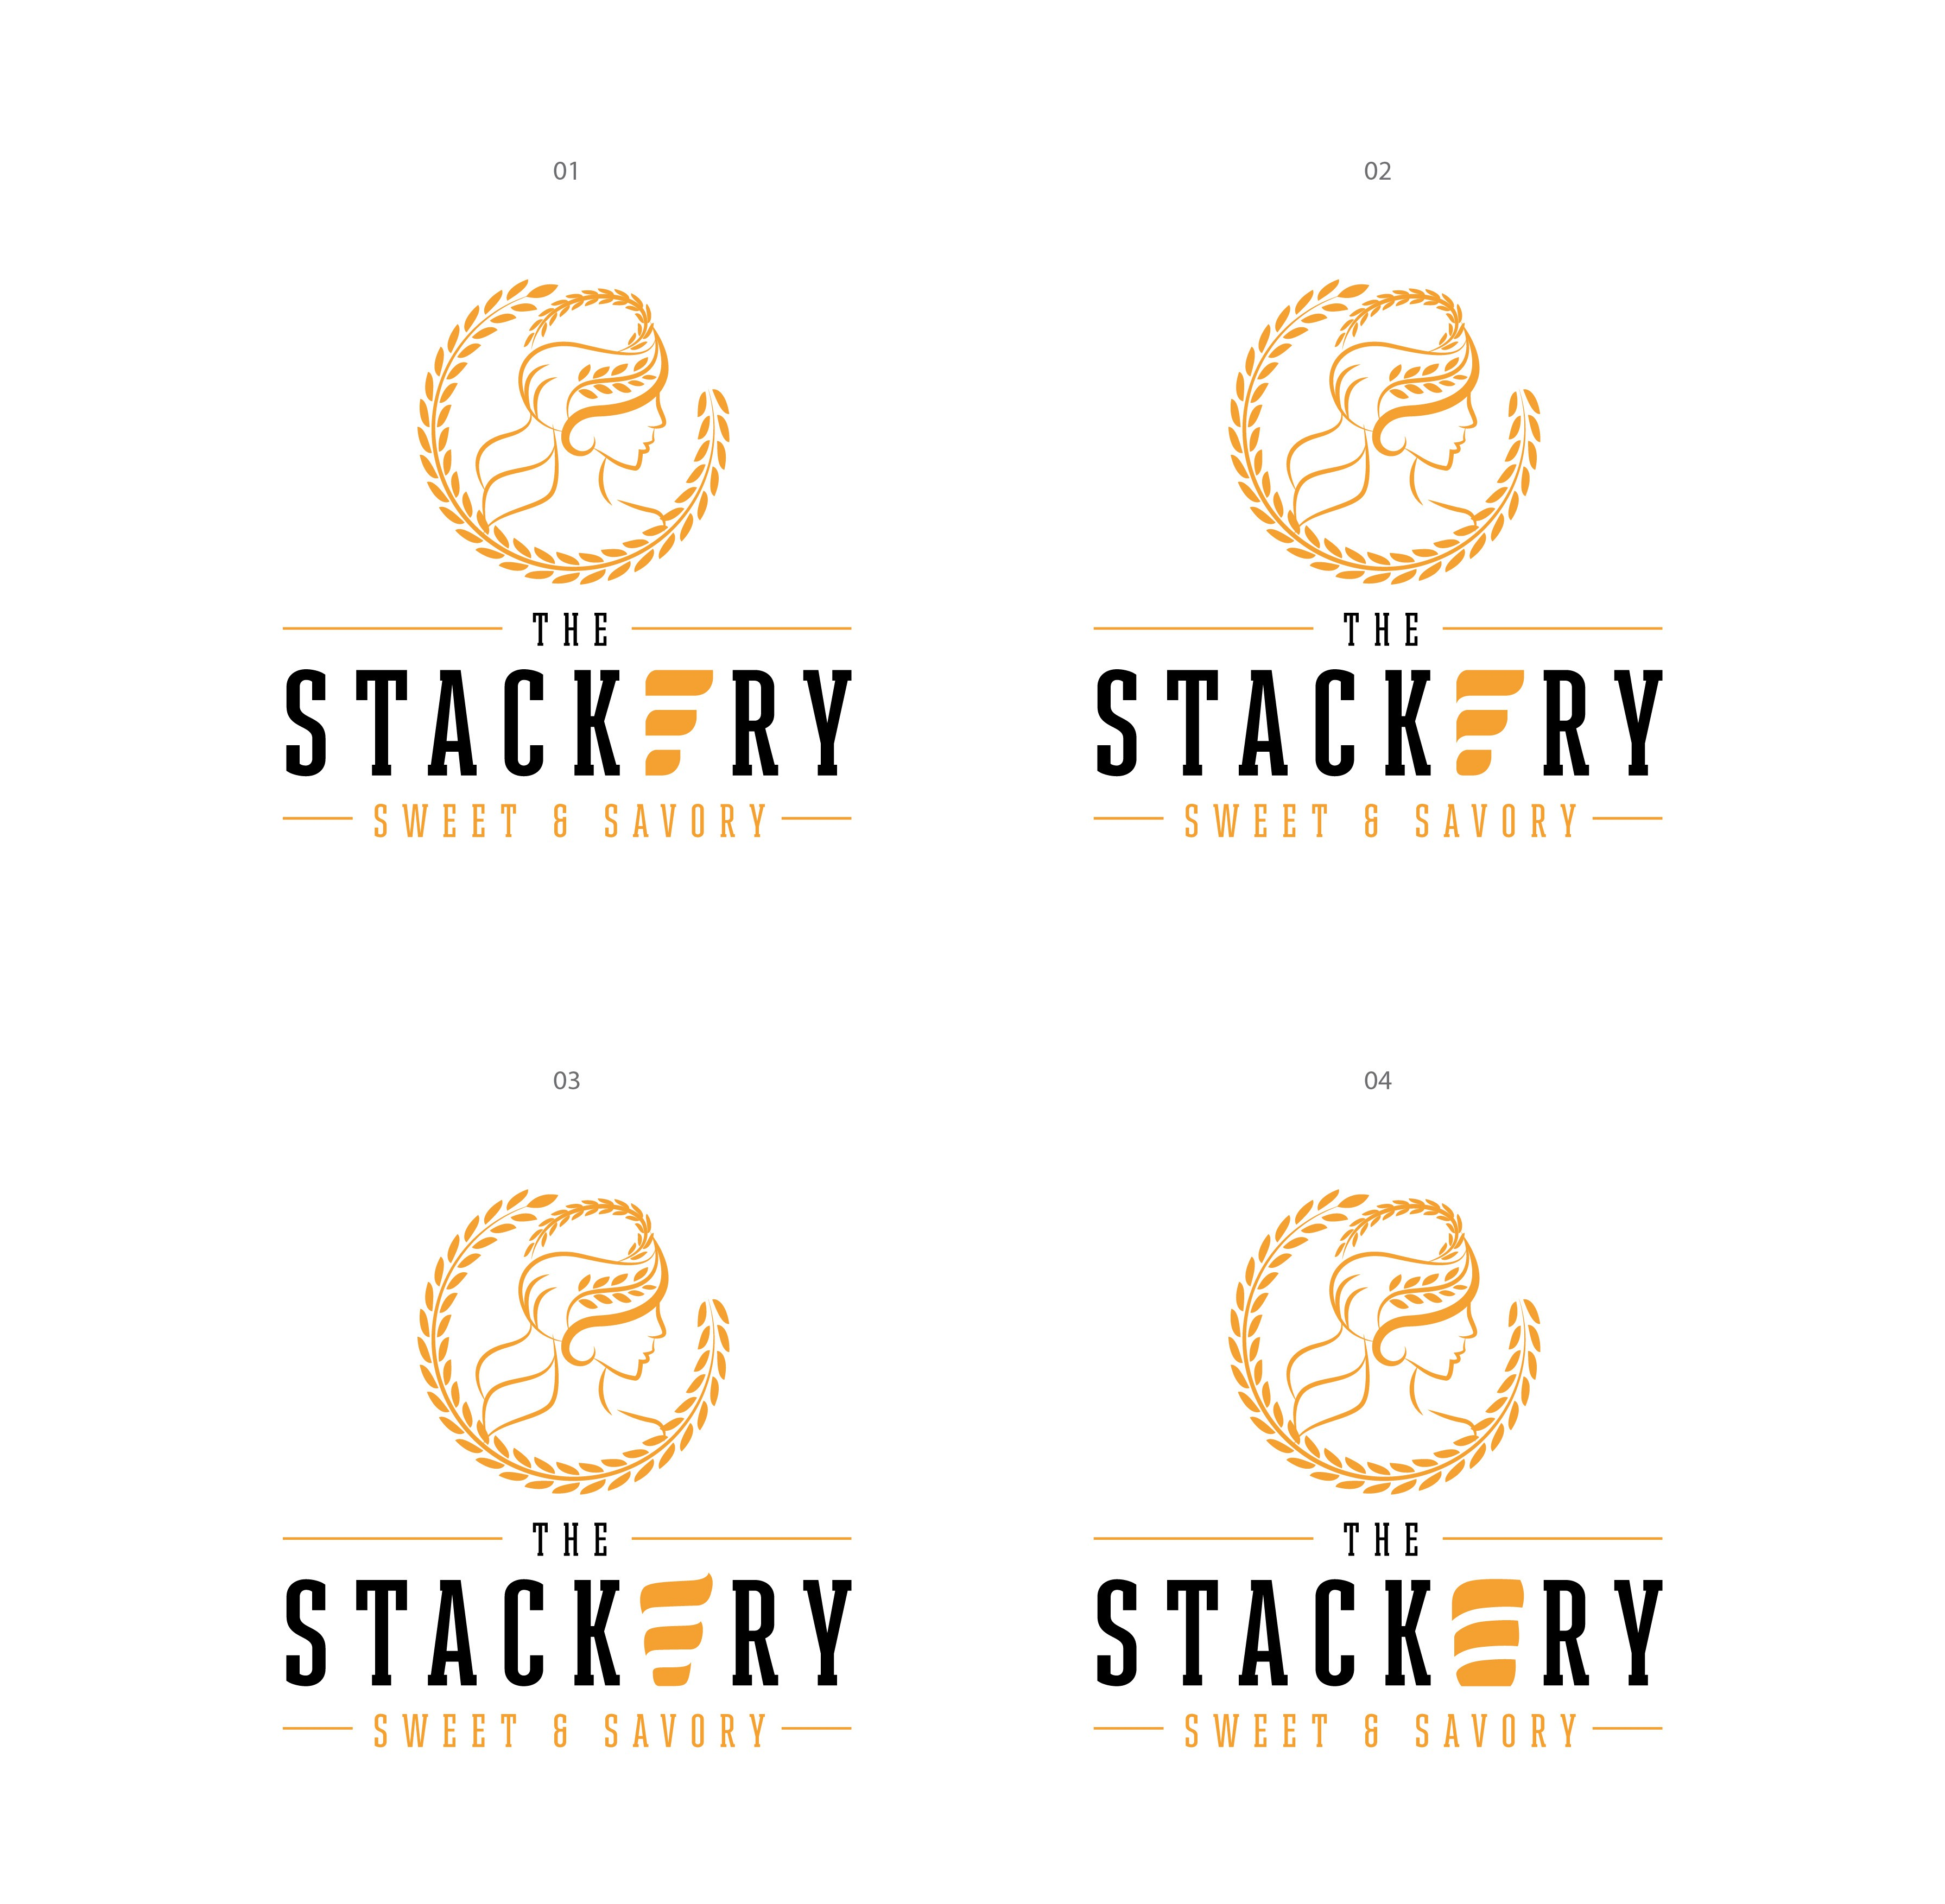 Design new innovative logo and brand for The Stack Attack - Sweet and Savory